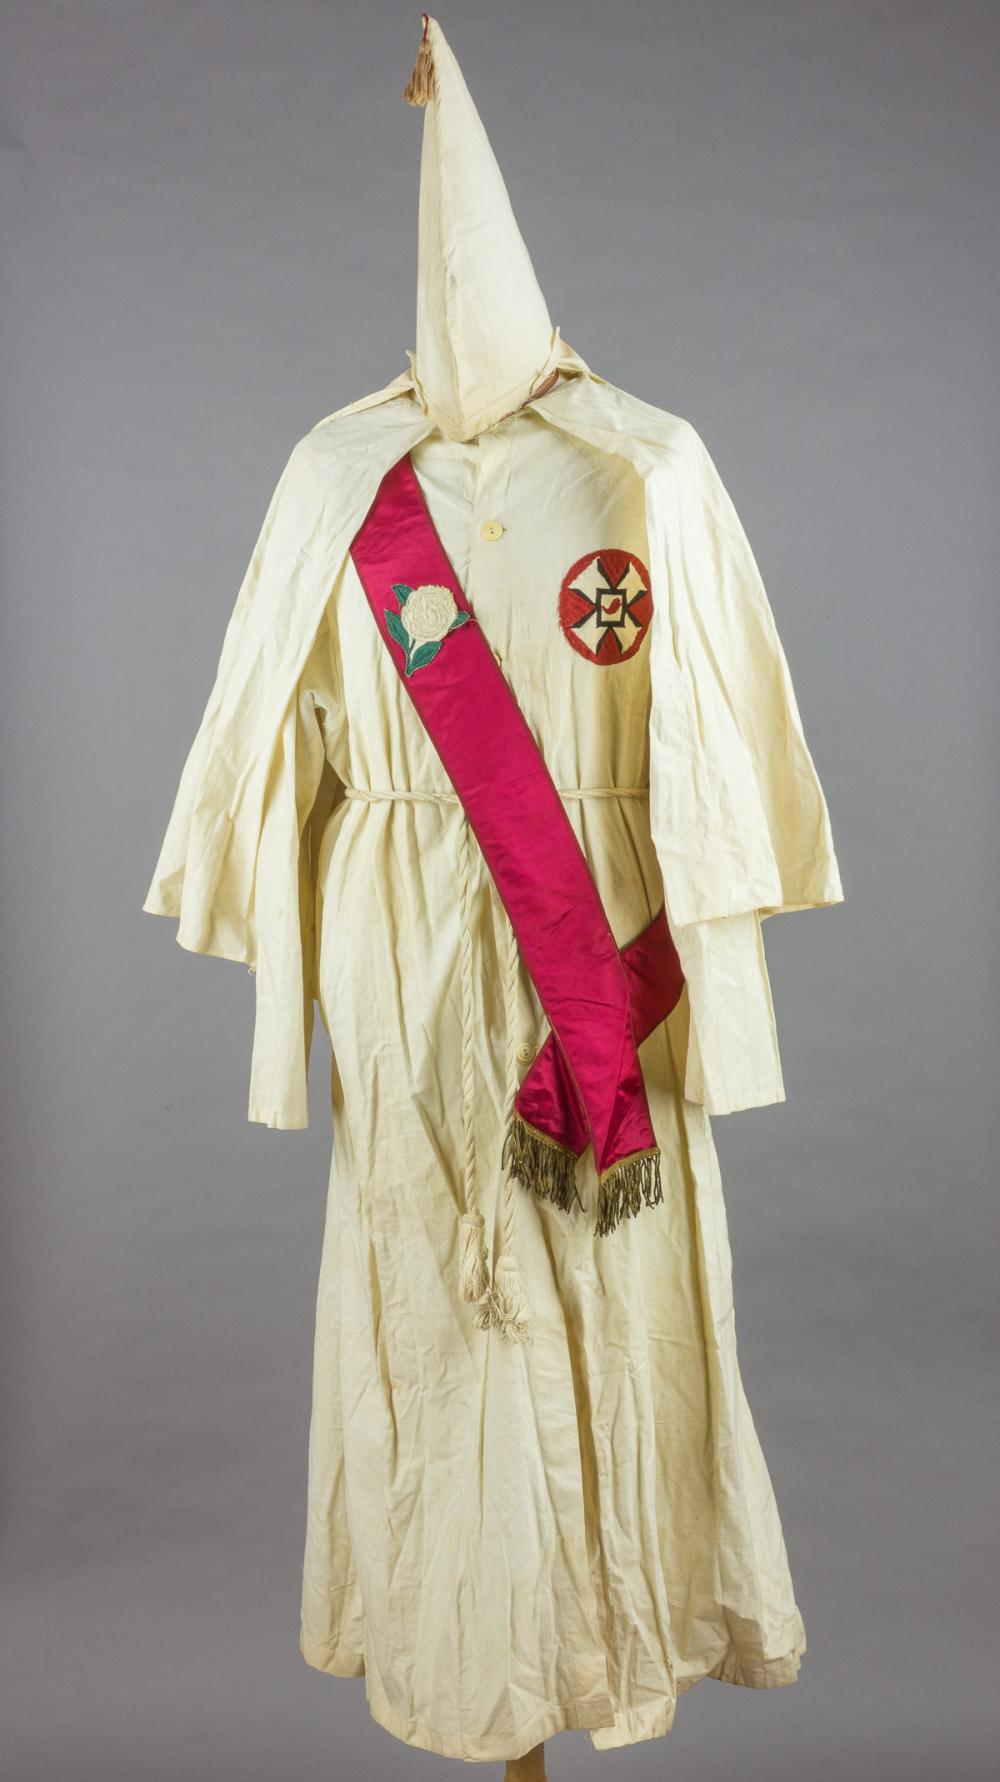 KU KLUX KLAN ROBE, HOOD AND SASH